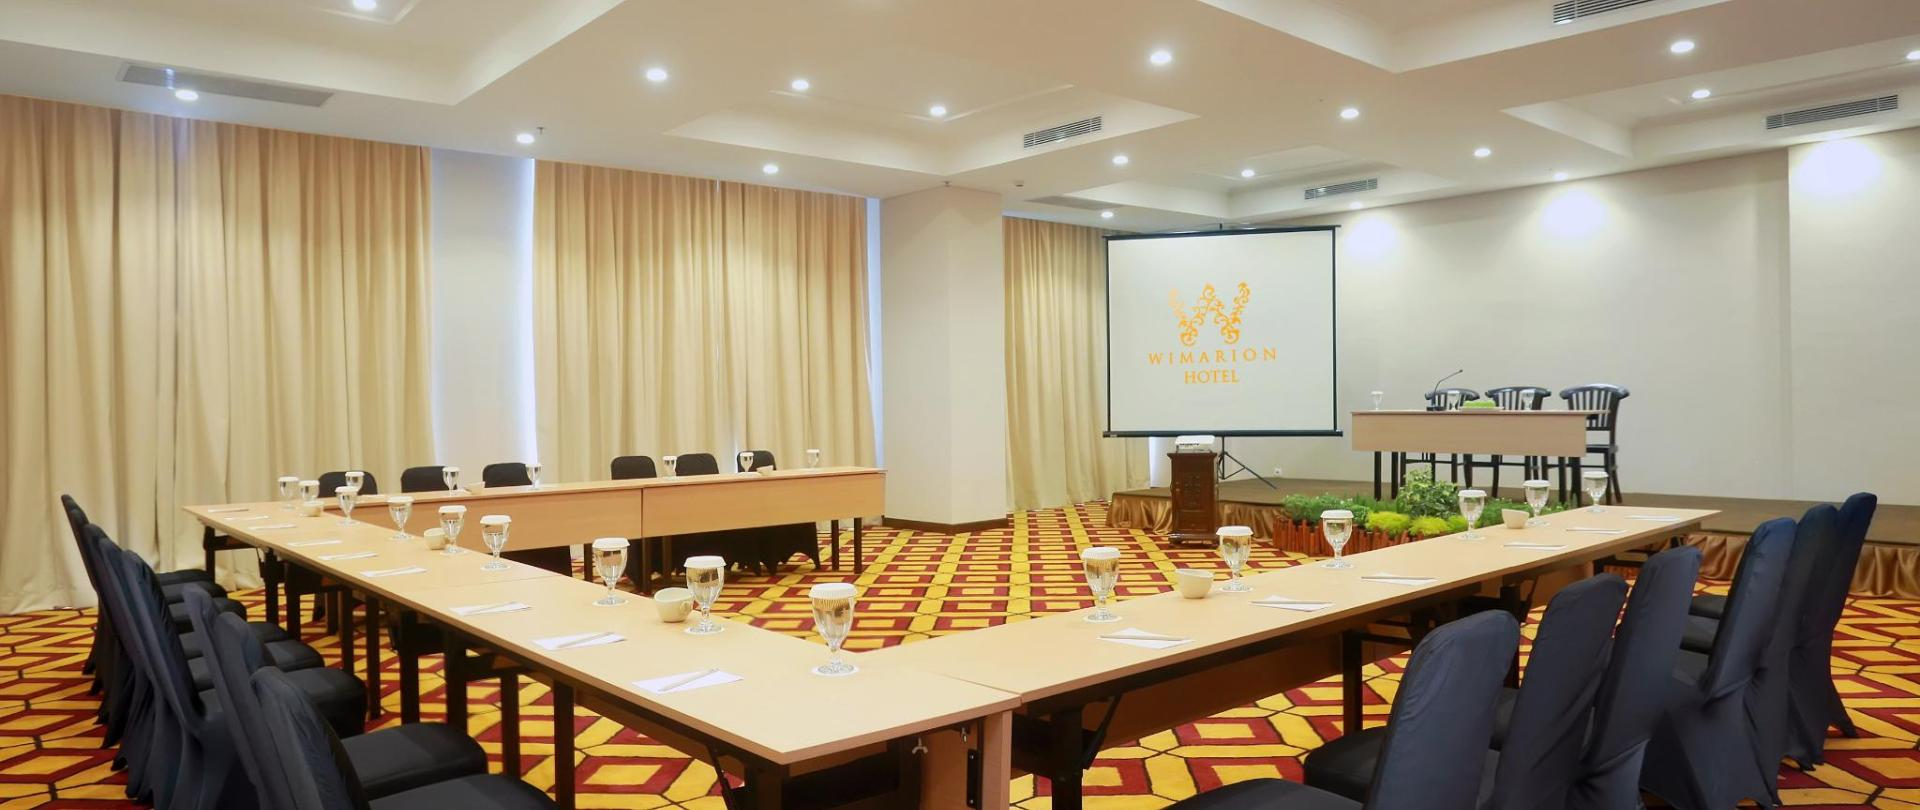 Kalika Meeting Room - Copy.jpg